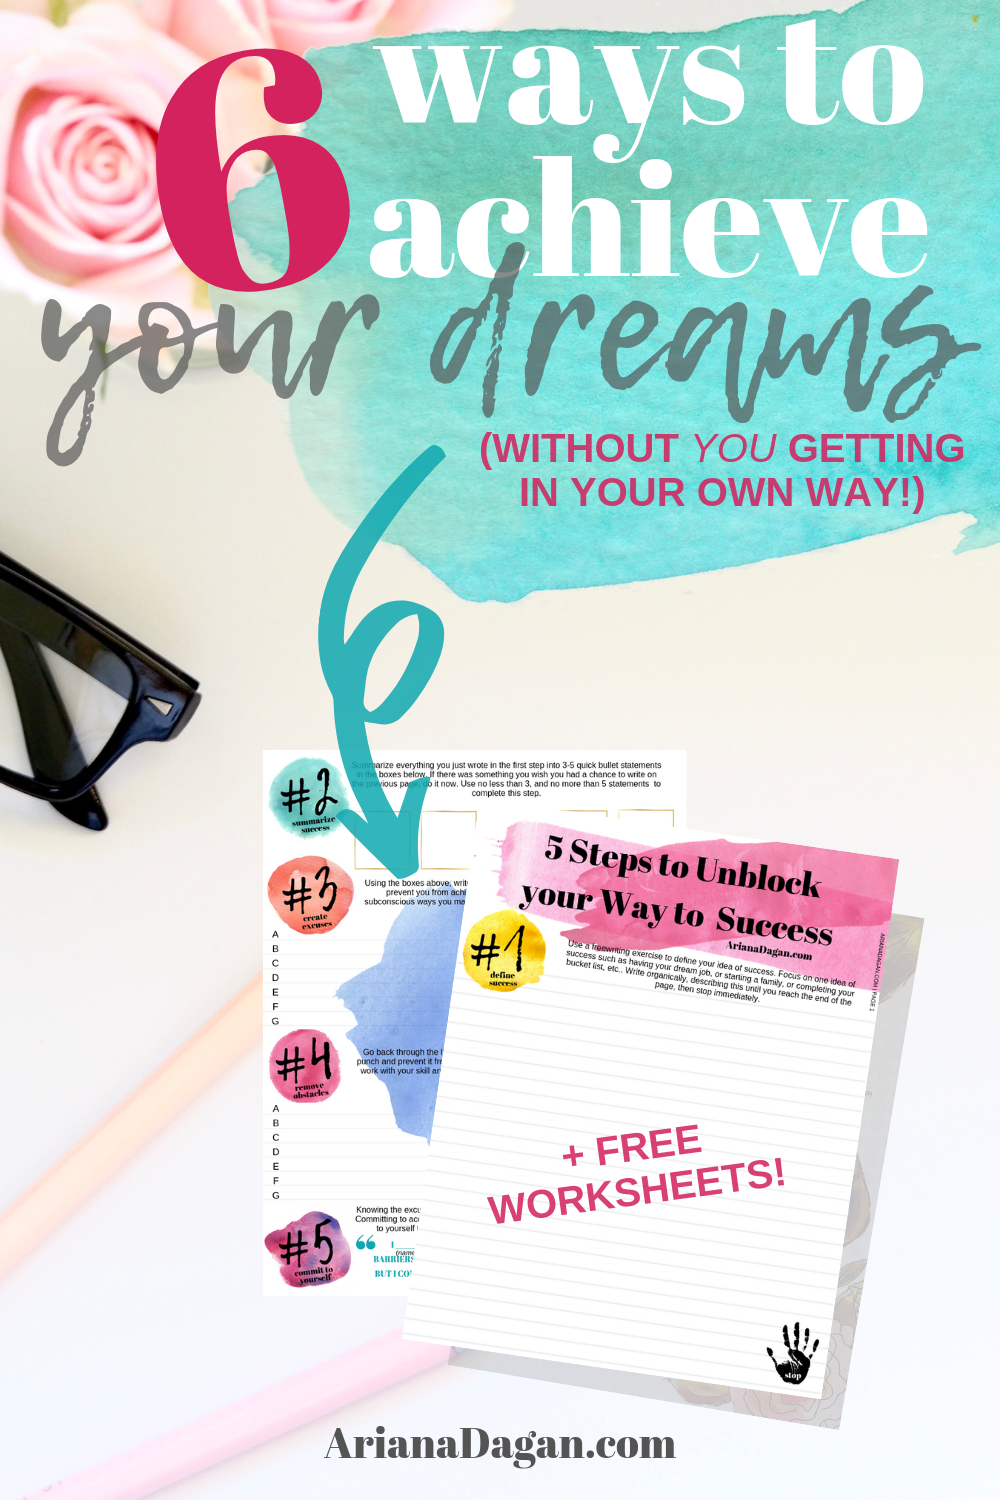 Get Out of Your Own Way to Find Success + FREE Worksheet by Ariana Dagan #arianadagan #findsuccess #freebie #freeworksheet #worksheet #workbook #printable #freeprintable #selfimprovement #selflove #selfcare #successful #productivity #selfgrowth #Selfdevelopment #development #professionaldevelopment #achievedreams